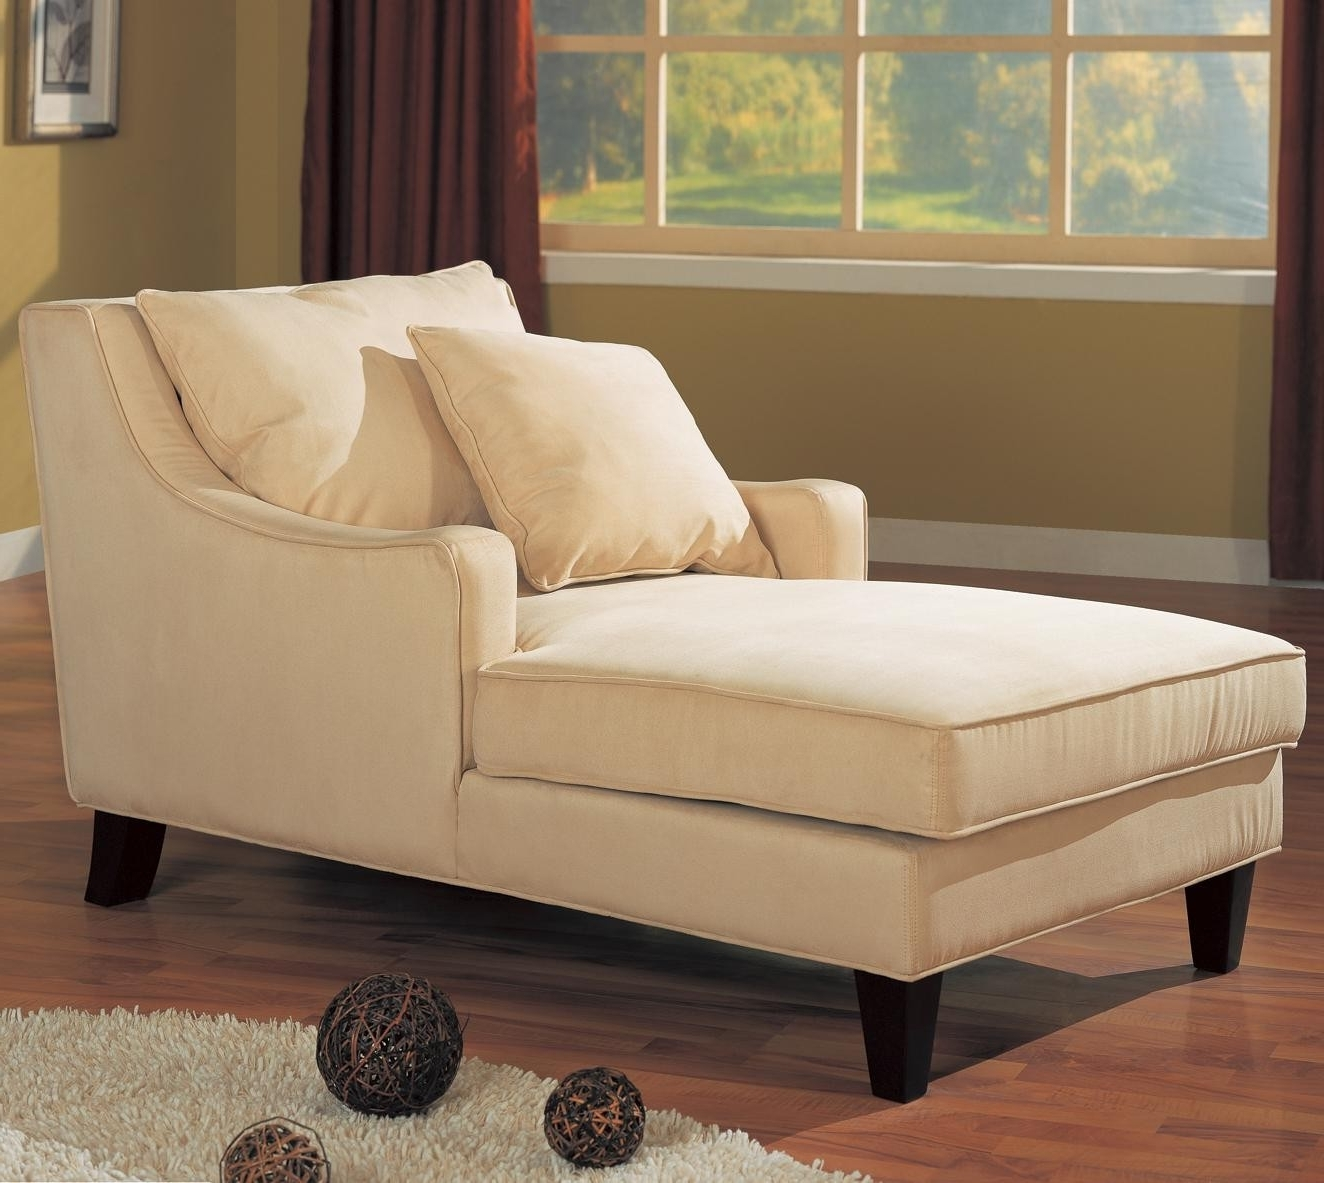 Most Recent Microfiber Chaises Pertaining To Accent Seating Microfiber Chaise Lounge Lowest Price – Sofa (View 13 of 15)